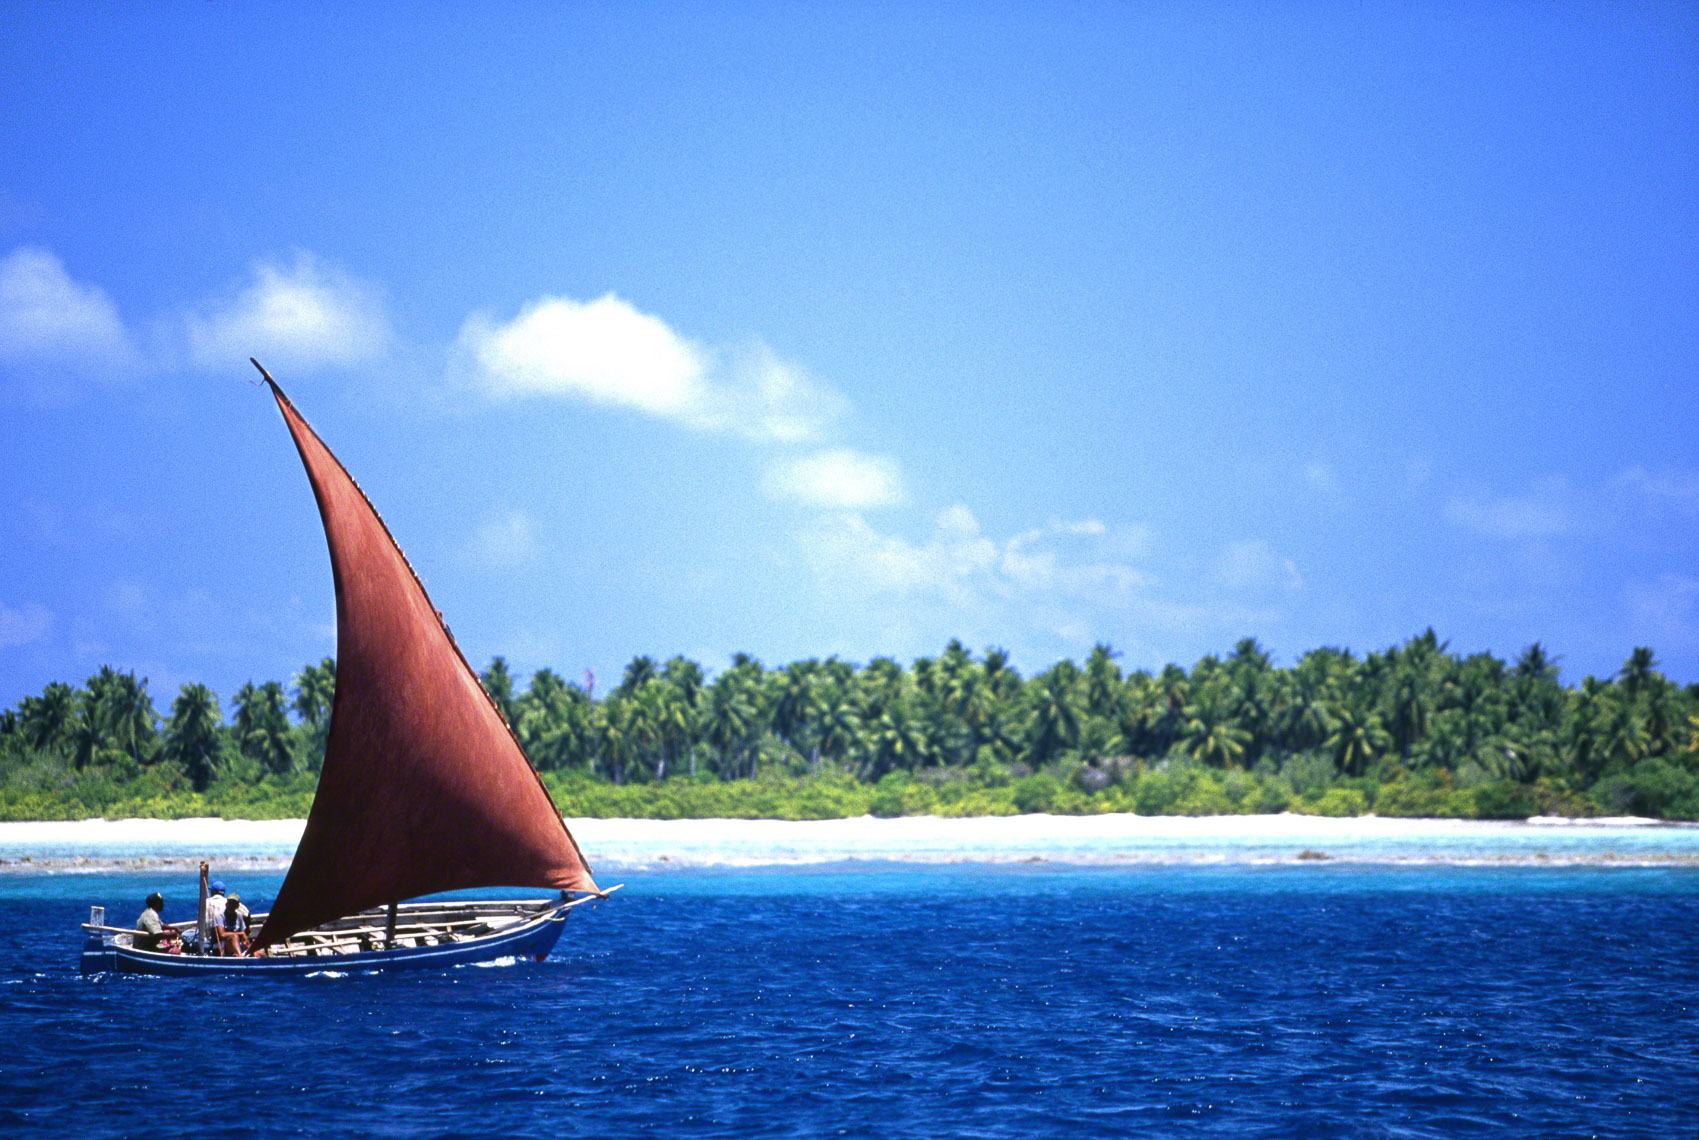 A small local sail boat with a red sail nagivates inside the outer reef, northern Maldives